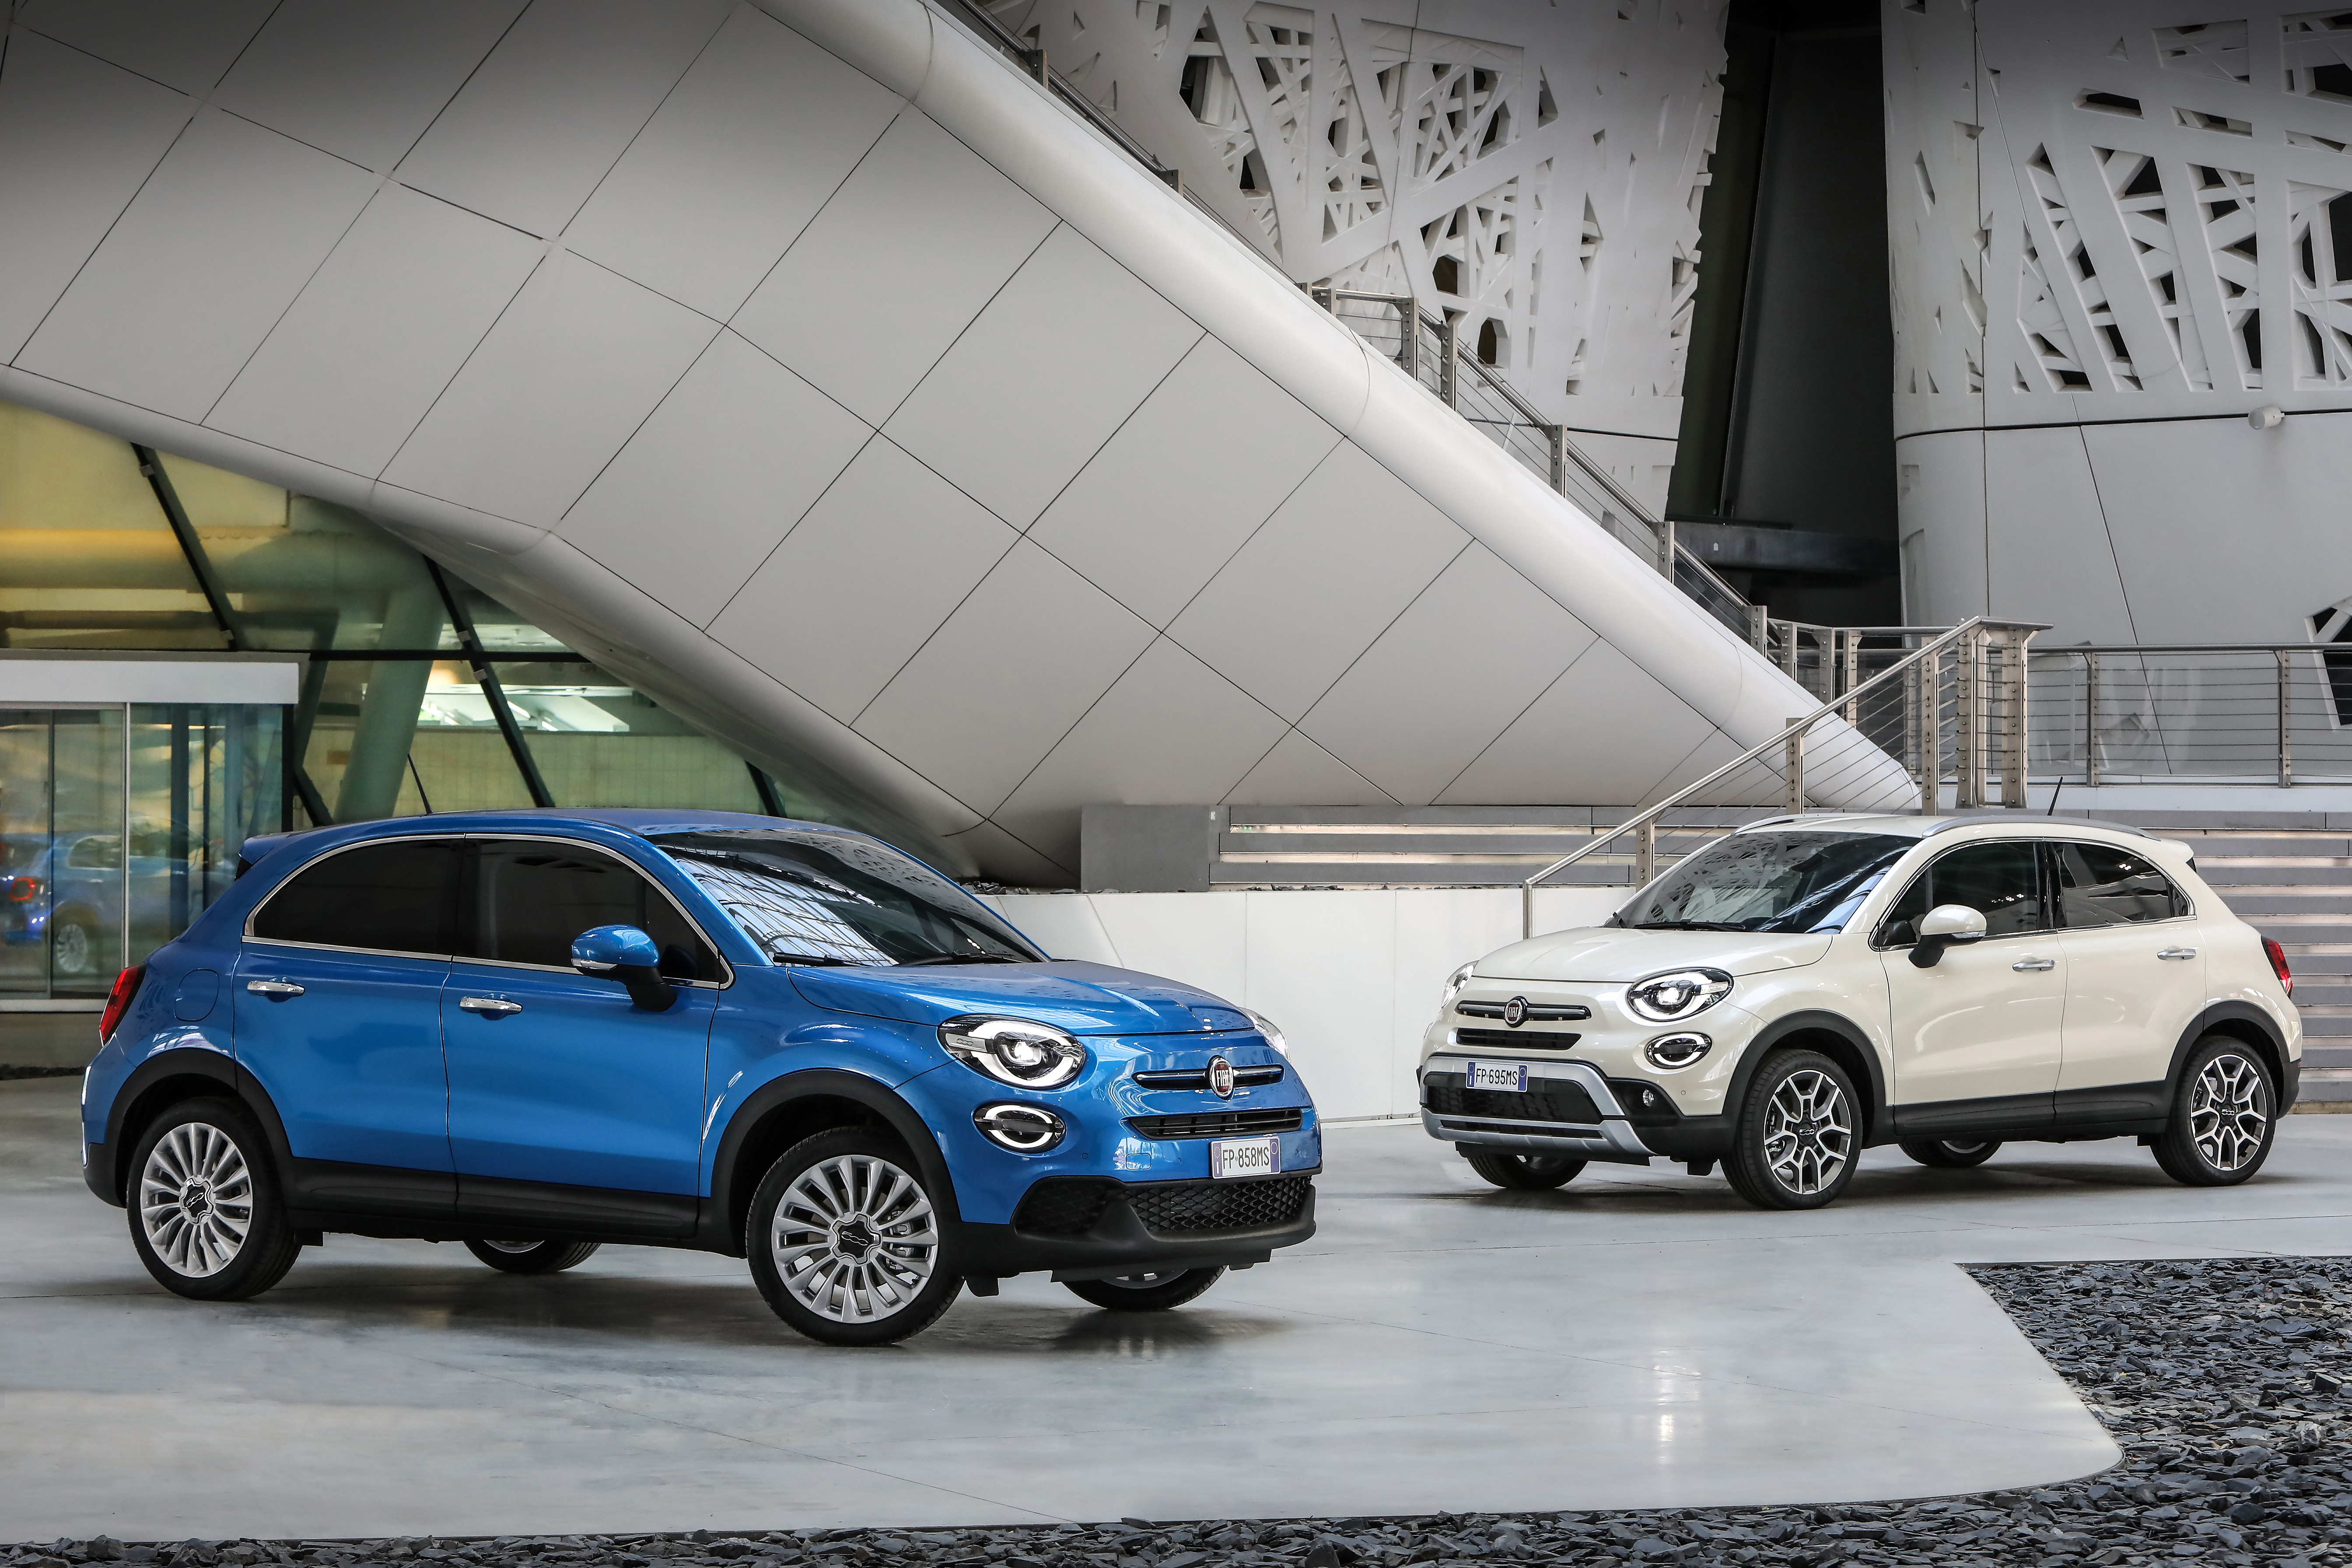 fiat 500x listini fiat chrysler automobiles press. Black Bedroom Furniture Sets. Home Design Ideas